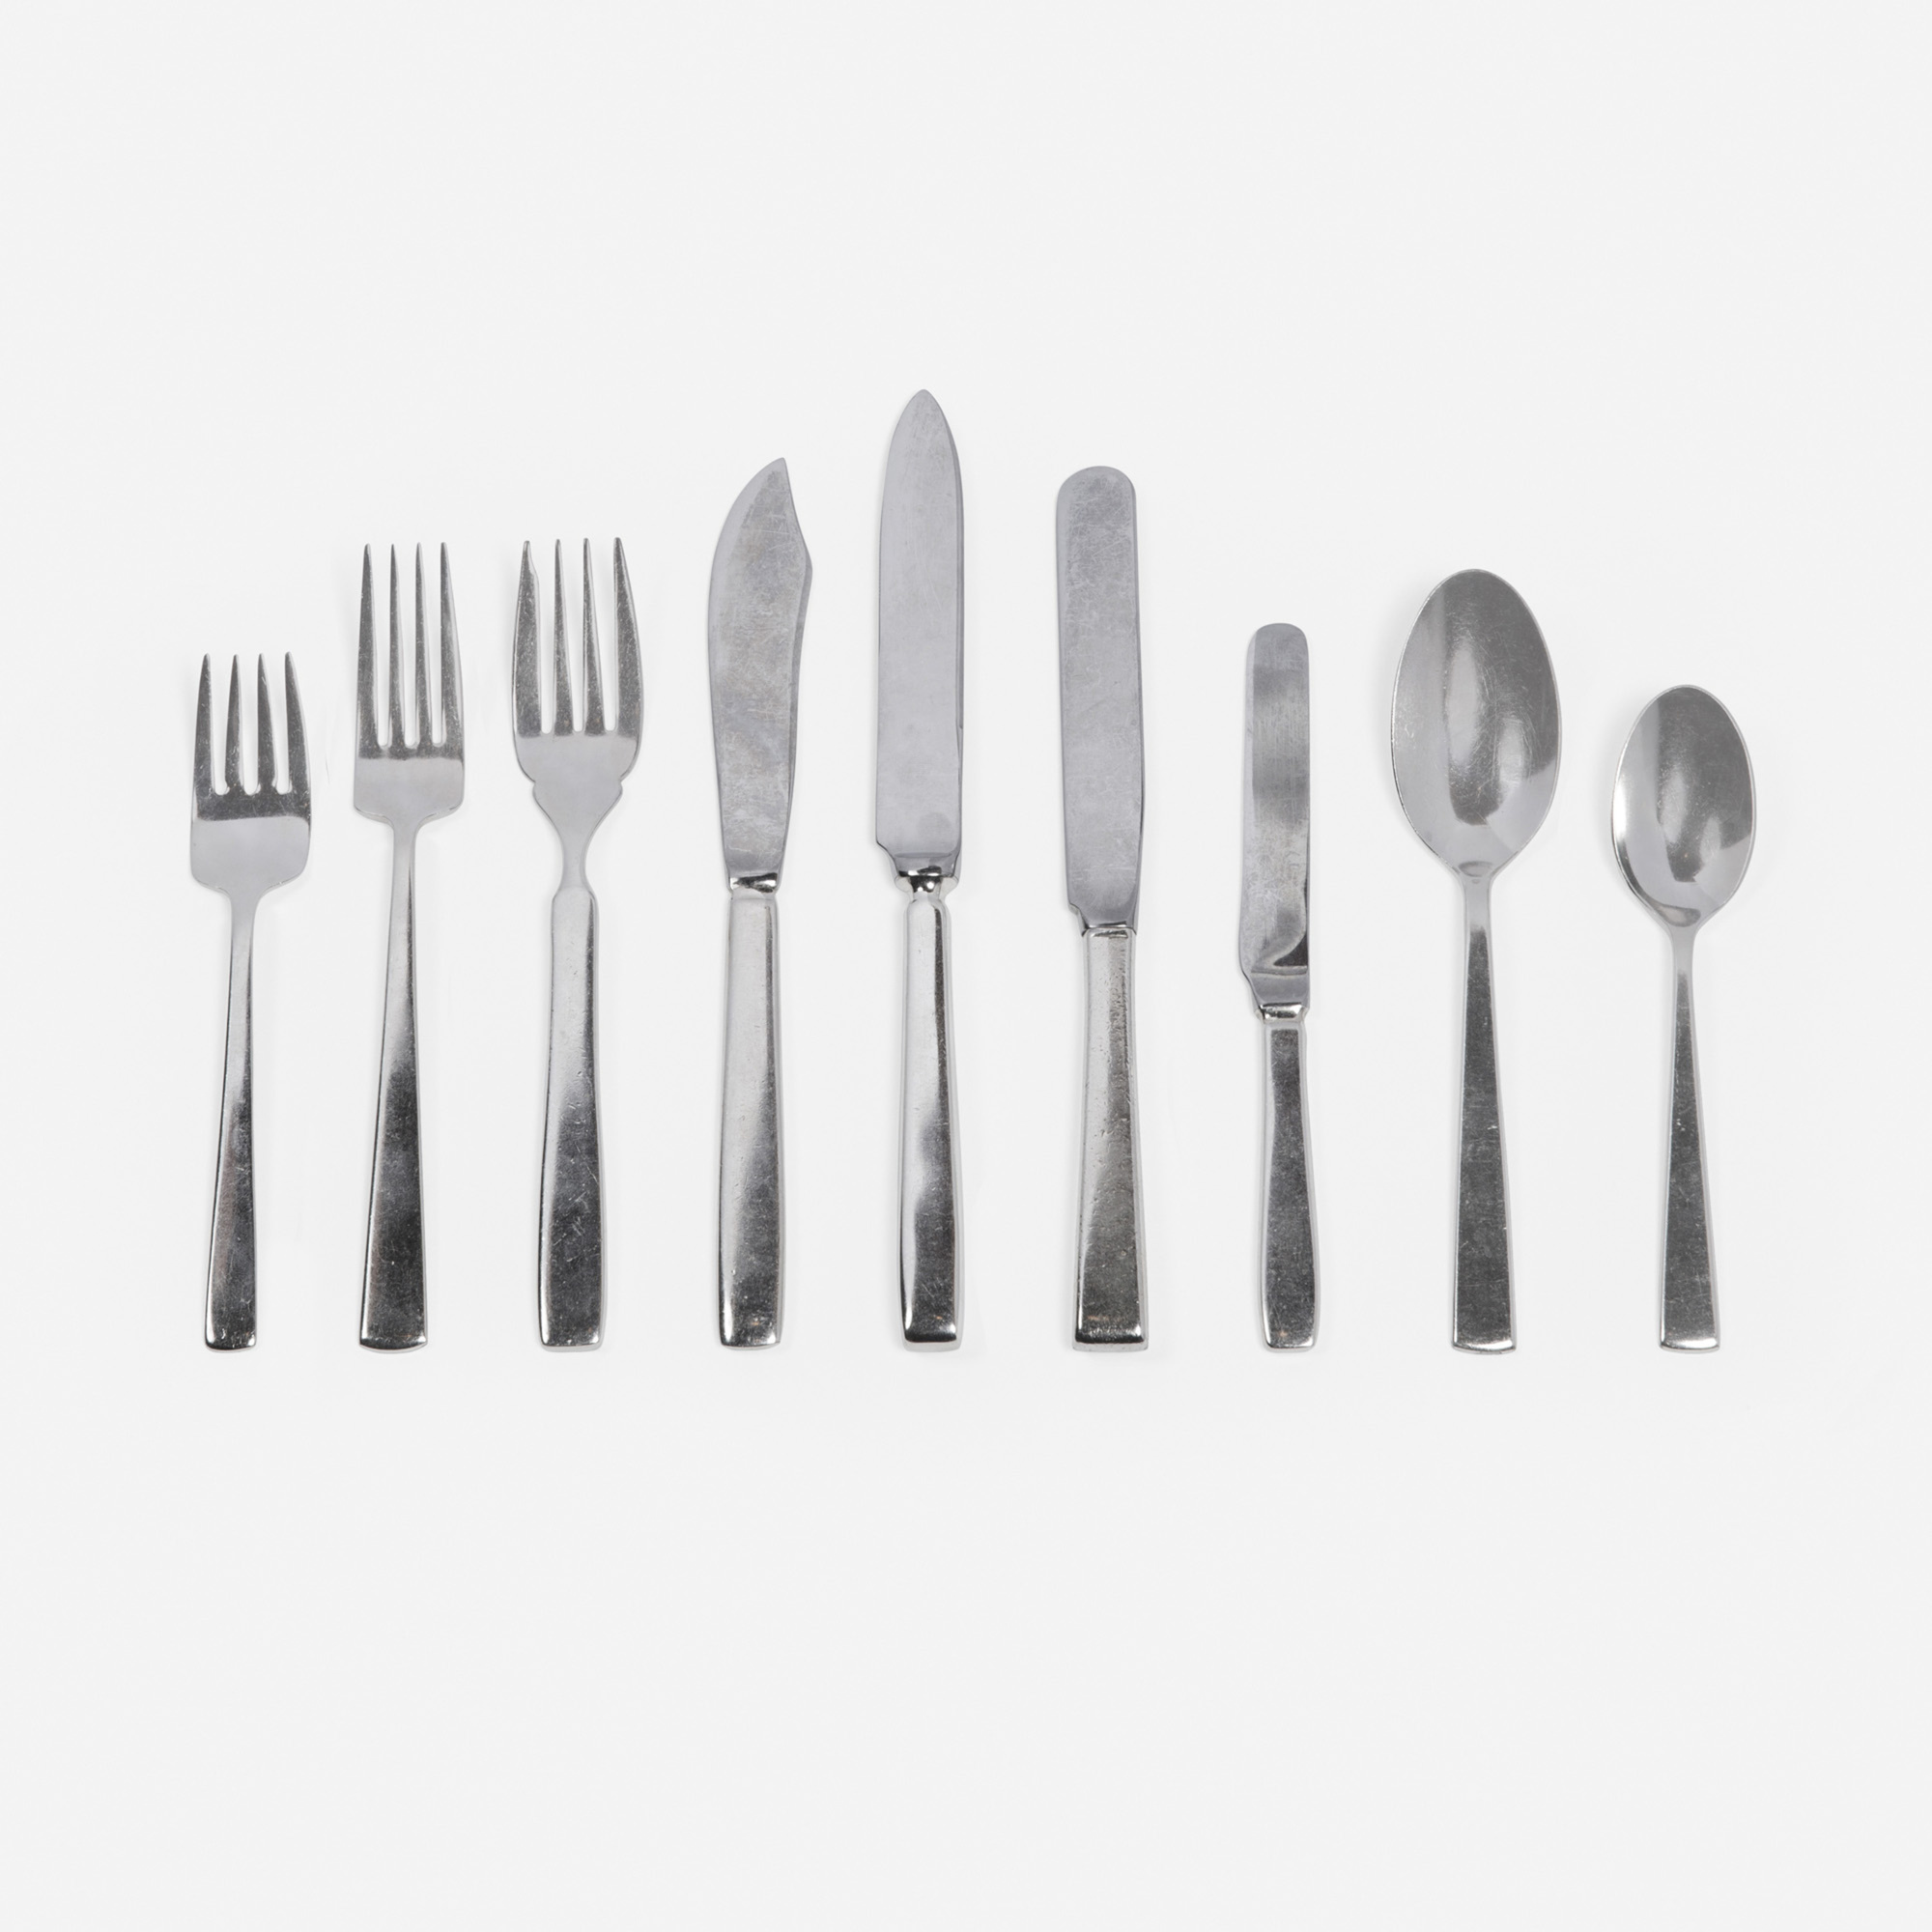 338: Garth and Ada Louise Huxtable / Four Seasons Luncheon flatware from the Grill Room, service for twelve (1 of 1)